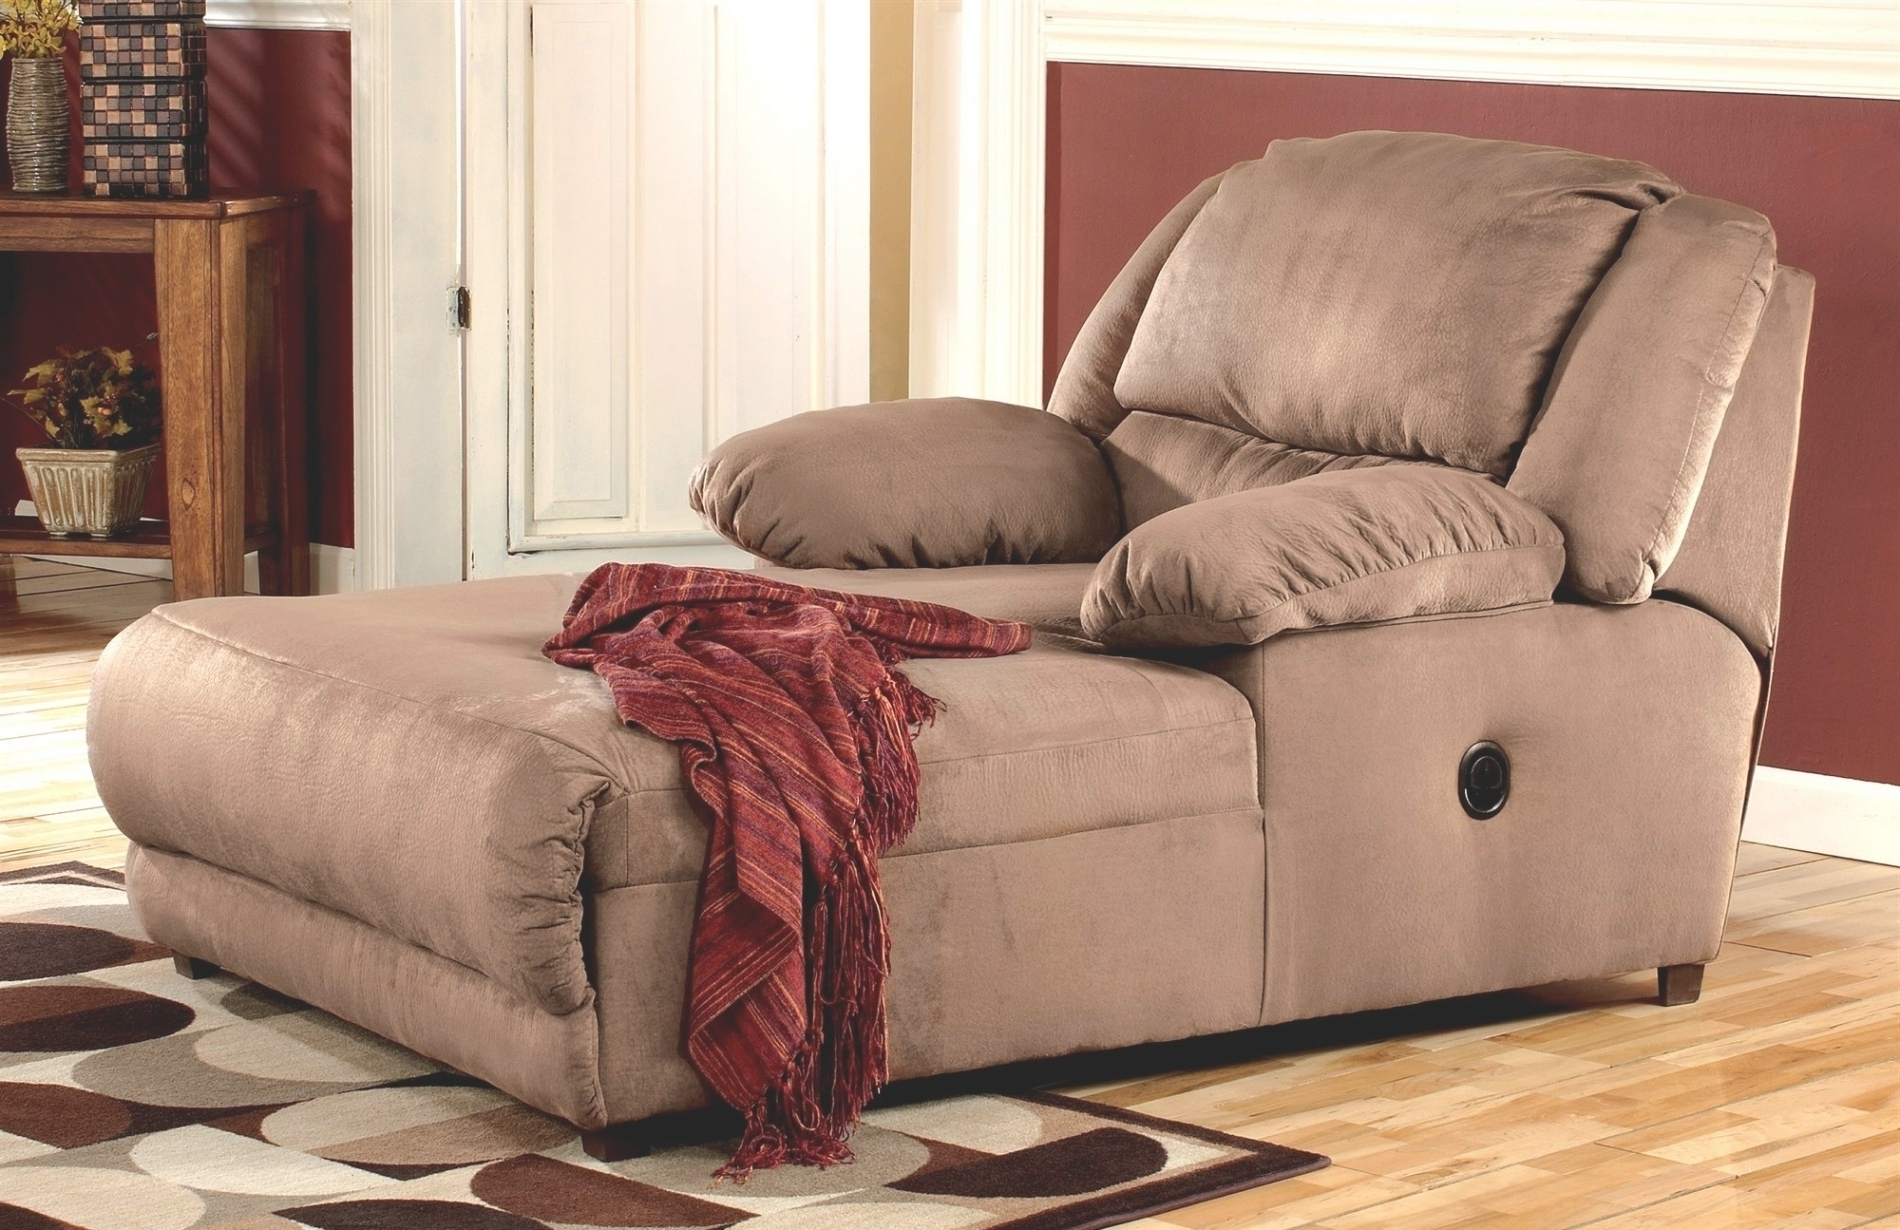 Allthingschula Throughout Popular Oversized Chaise Chairs (View 1 of 15)